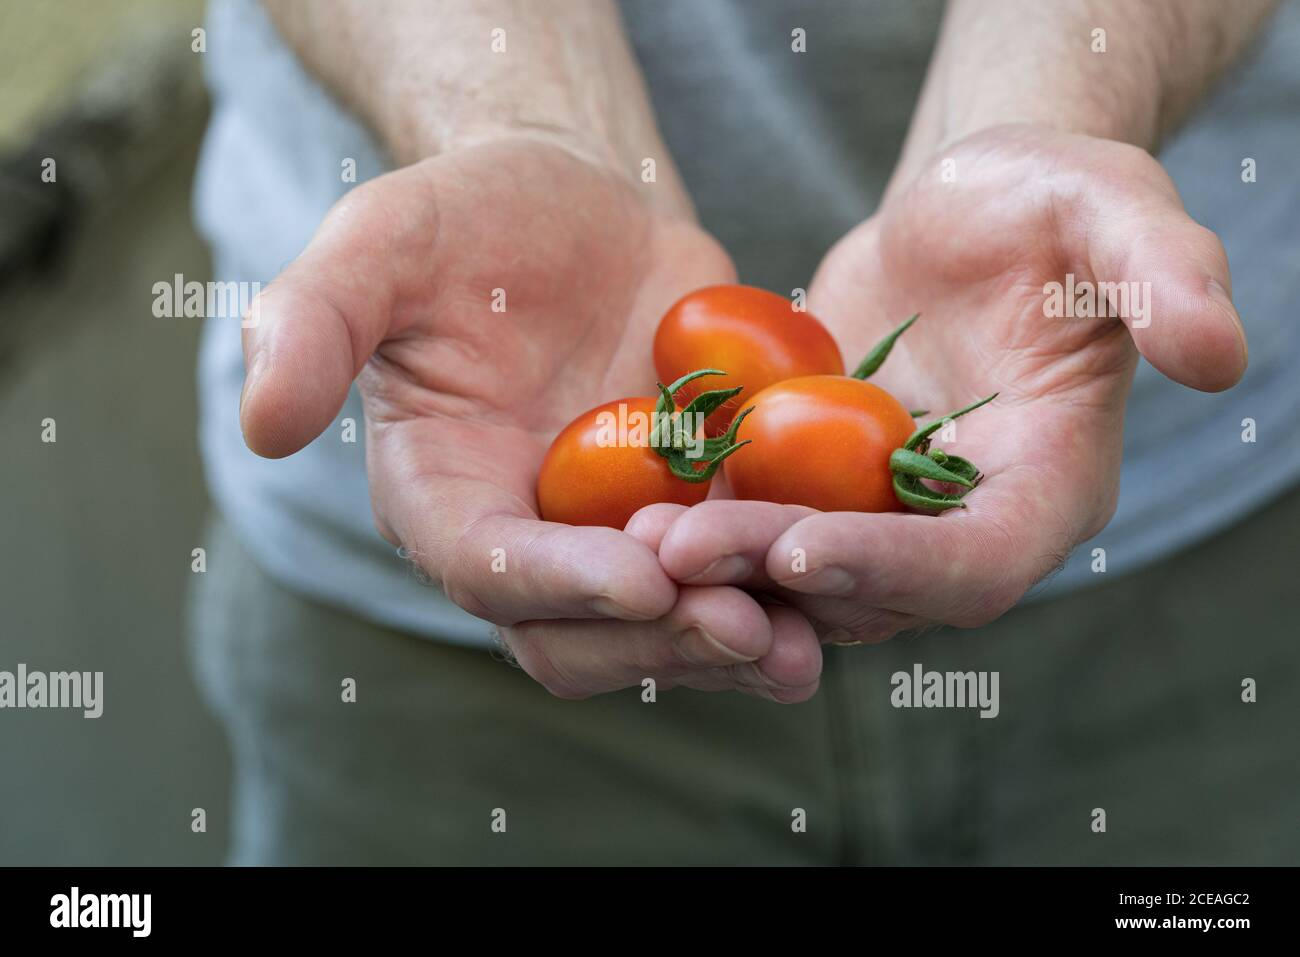 a-man-with-hard-working-rough-hands-holds-out-a-fresh-crop-of-ripe-grape-tomatoes-from-a-recent-harvest-authentic-gardening-2CEAGC2.jpg